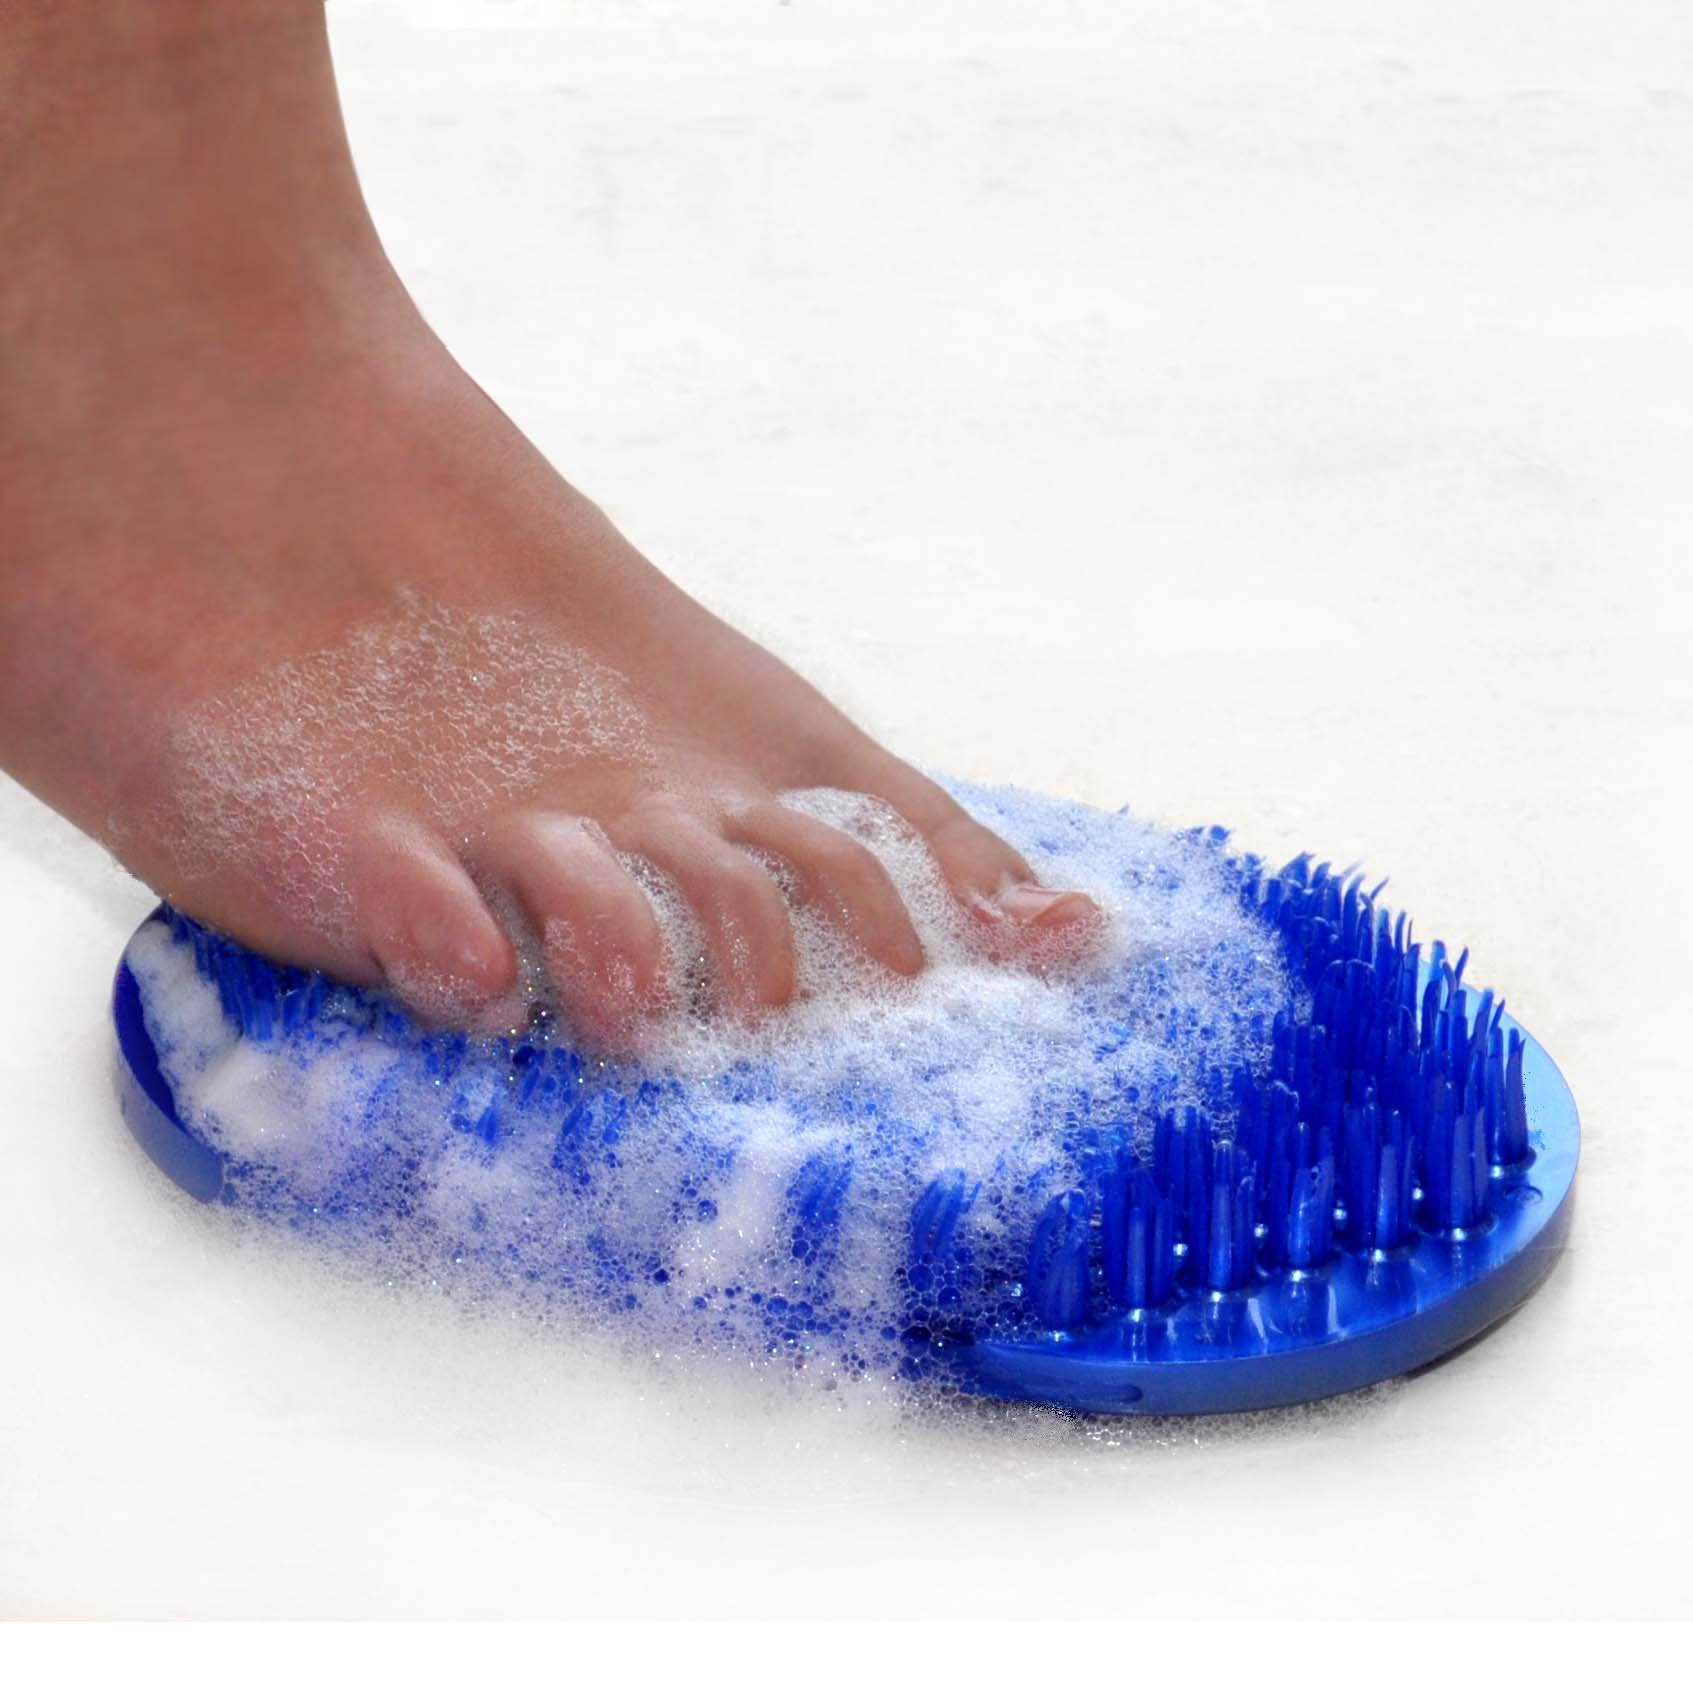 Soapy Toes Travel-Sized Foot Scrubber & Massager (Pearl Blue) - Foot Brush Cleans and Invigorates Feet without awkward bending and balancing, Suctions to tub or shower floor by Body & Sole